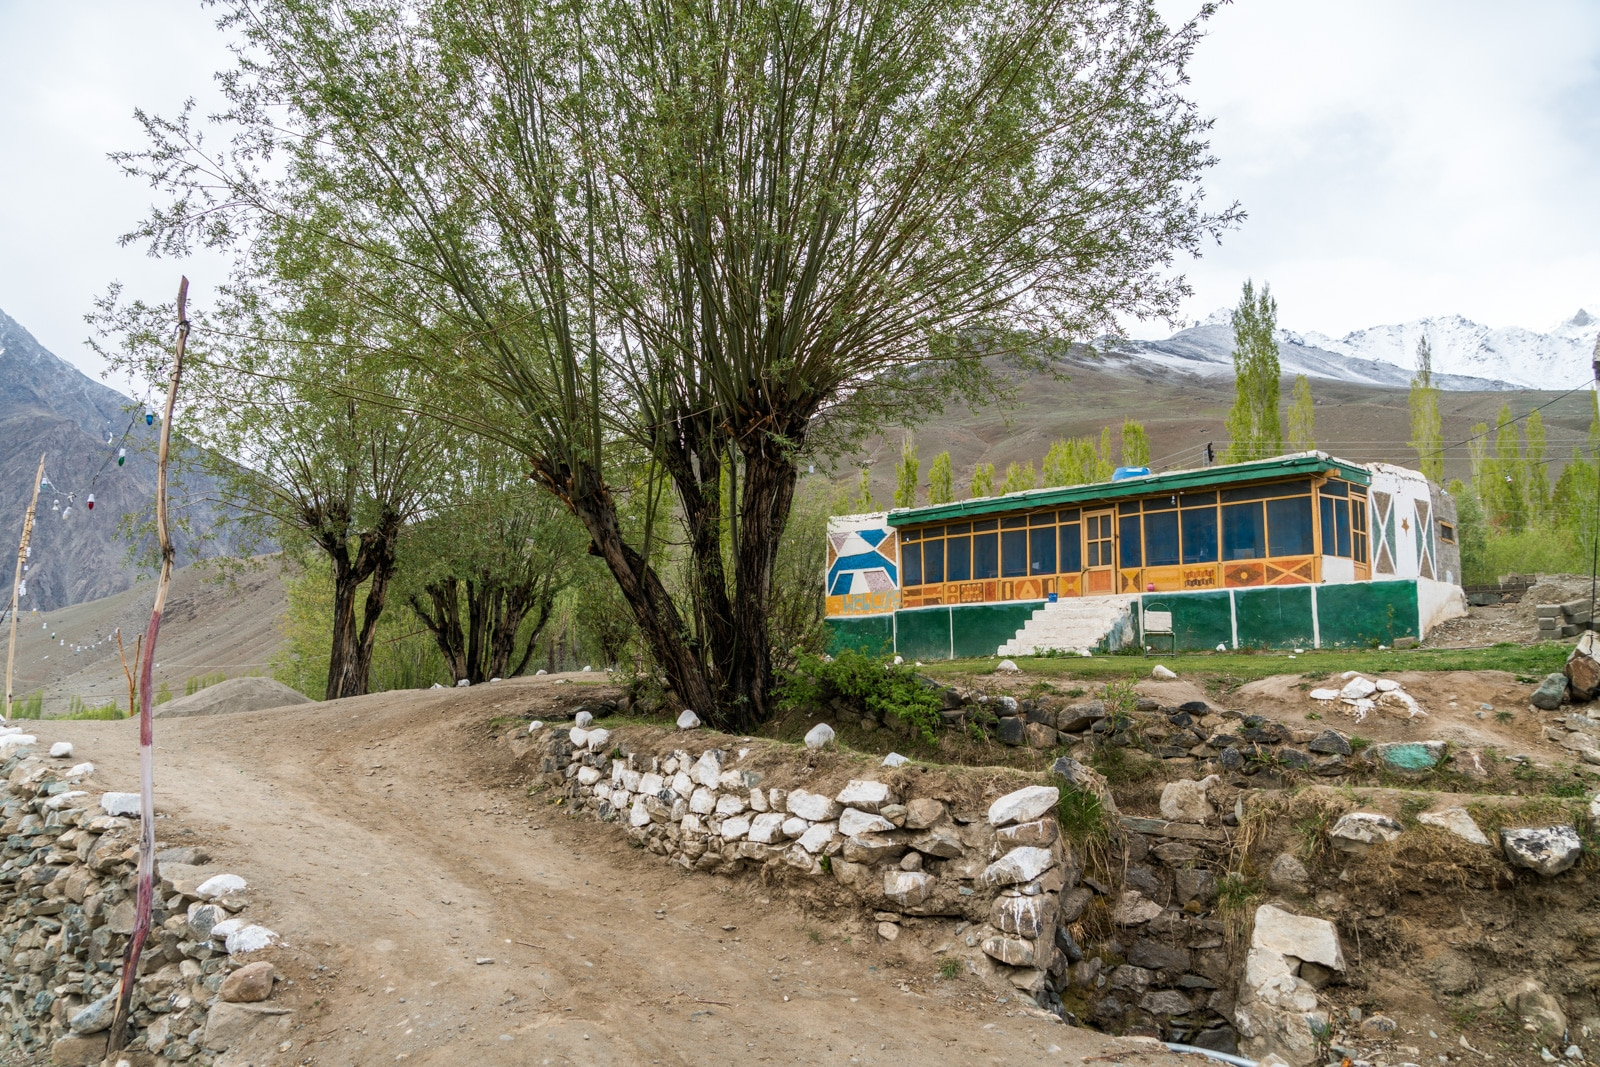 Phander Valley travel guide - Lake View Hotel Phander - Lost With Purpose travel blog